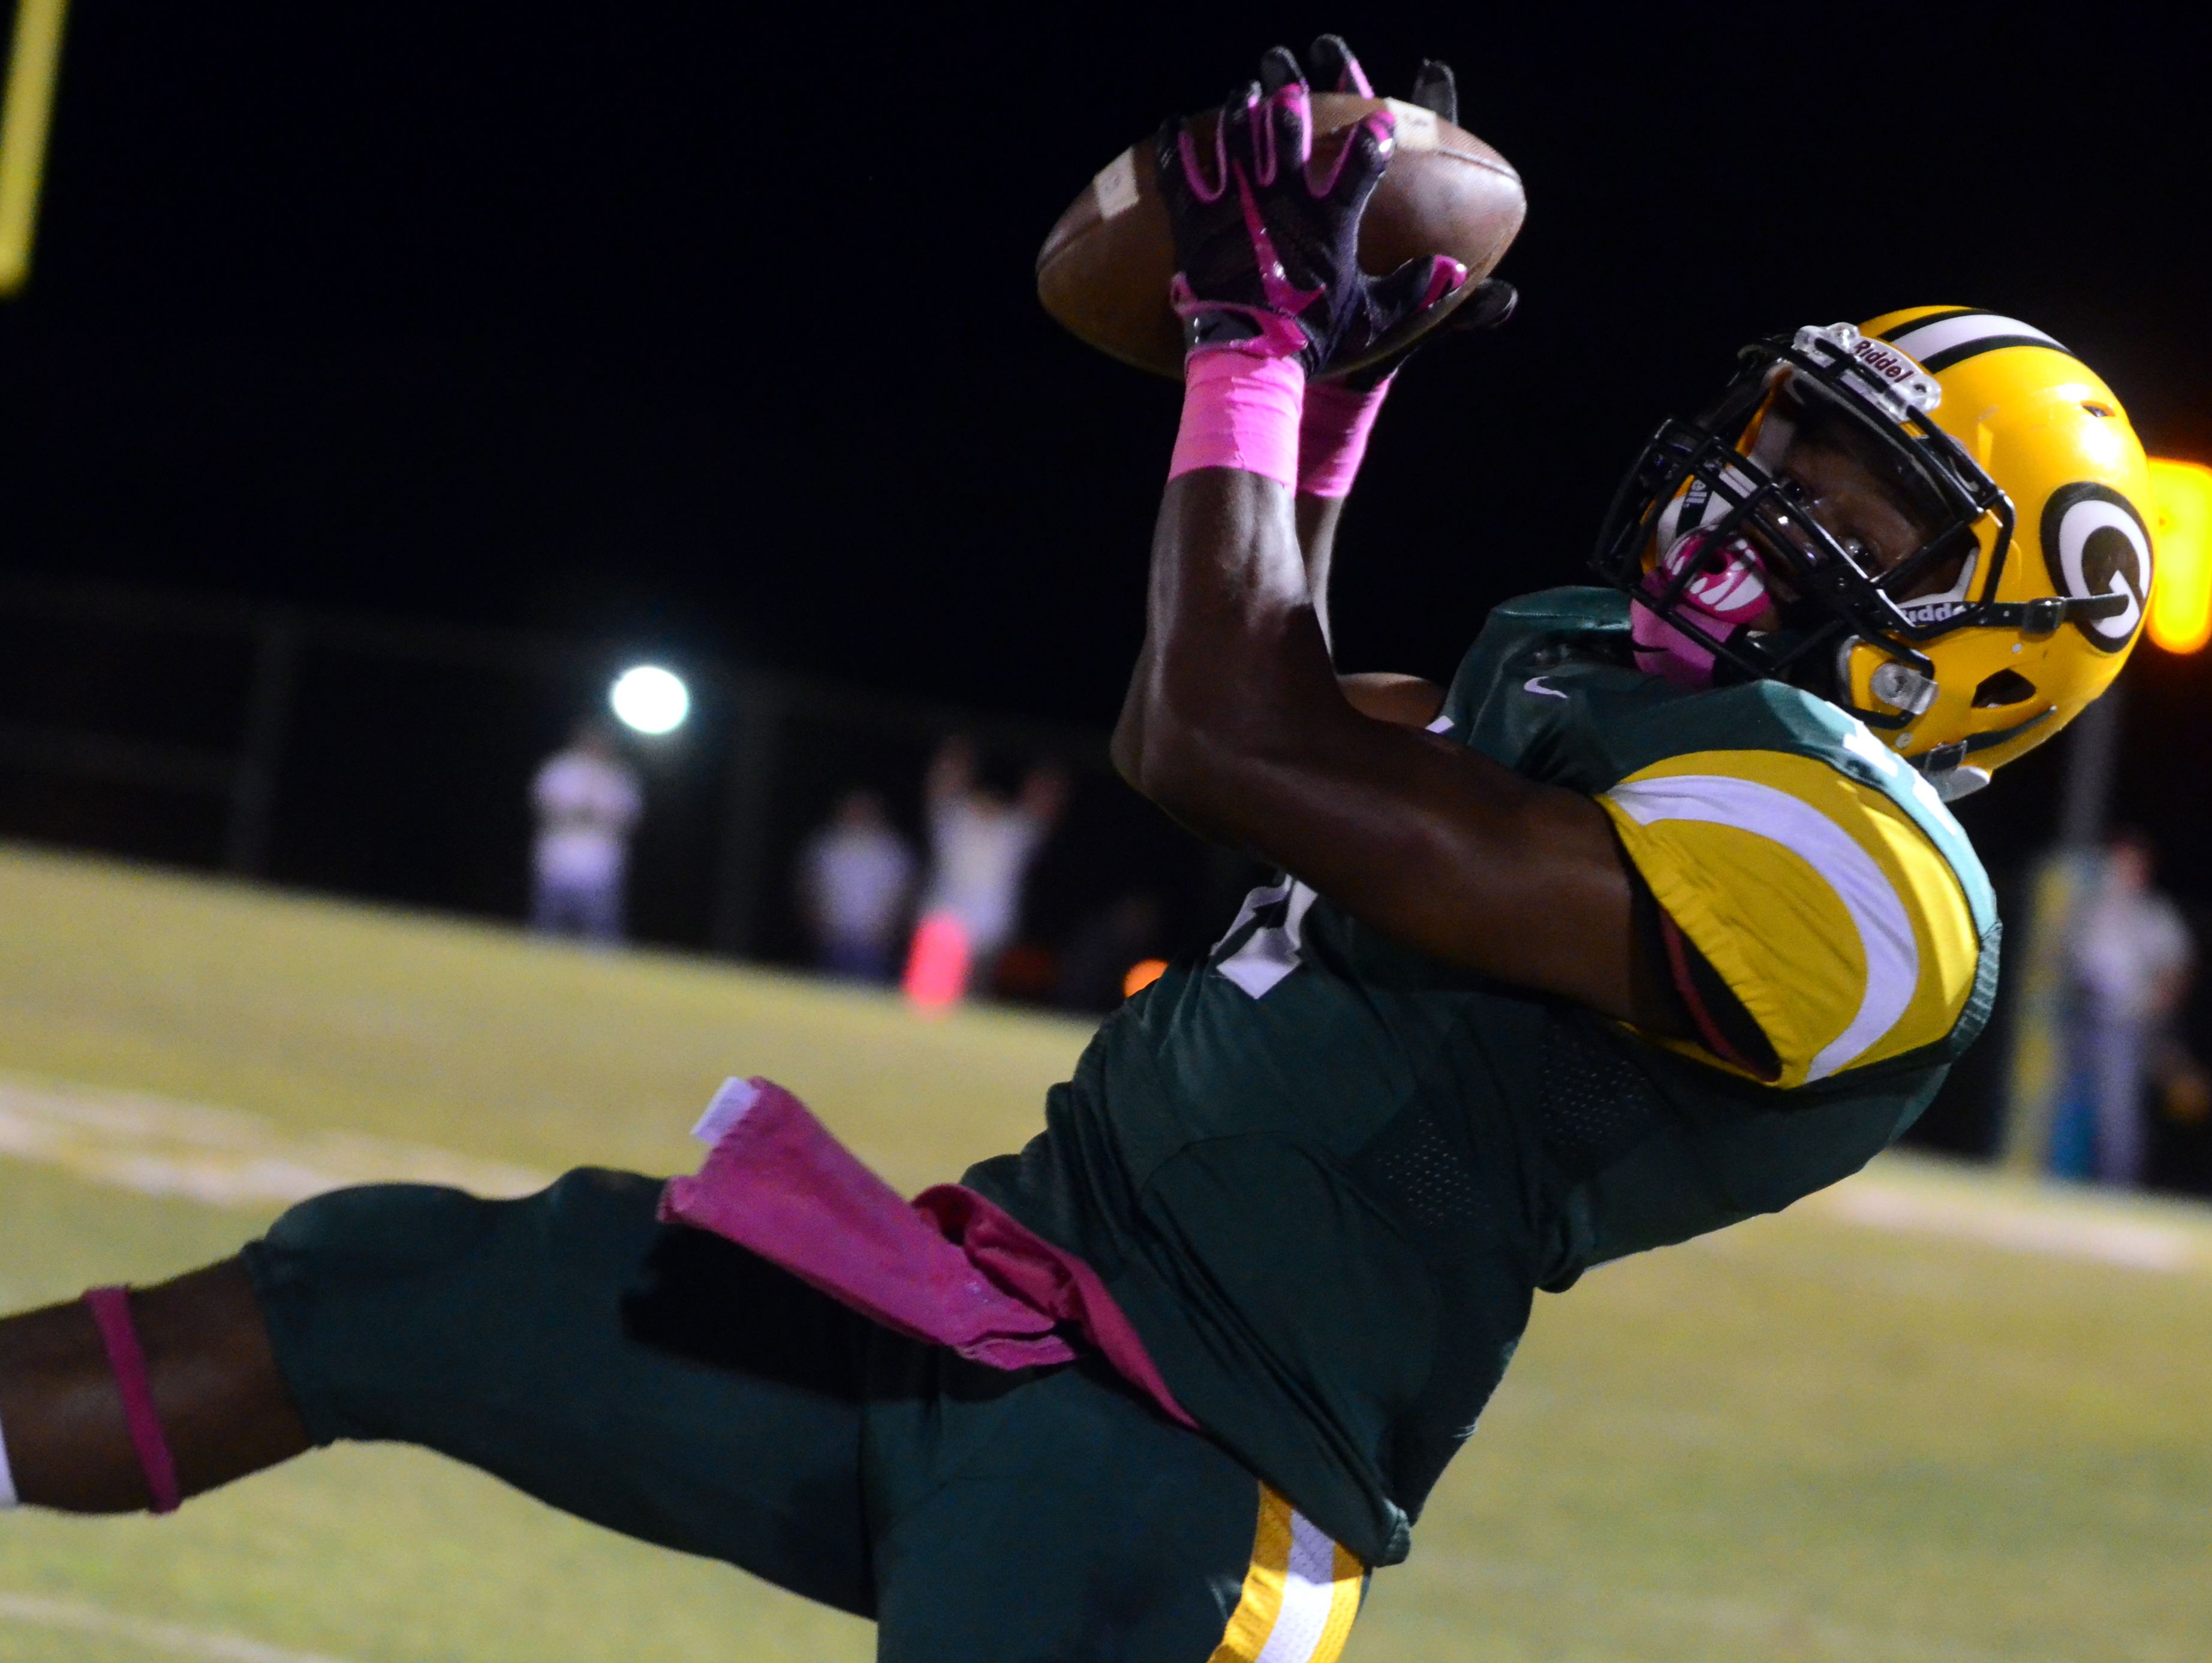 Gallatin senior Dezmond Chambers goes airborne to haul in a pass on the sideline, though it was ruled incomplete during Friday's 49-20 victory over Hendersonville.